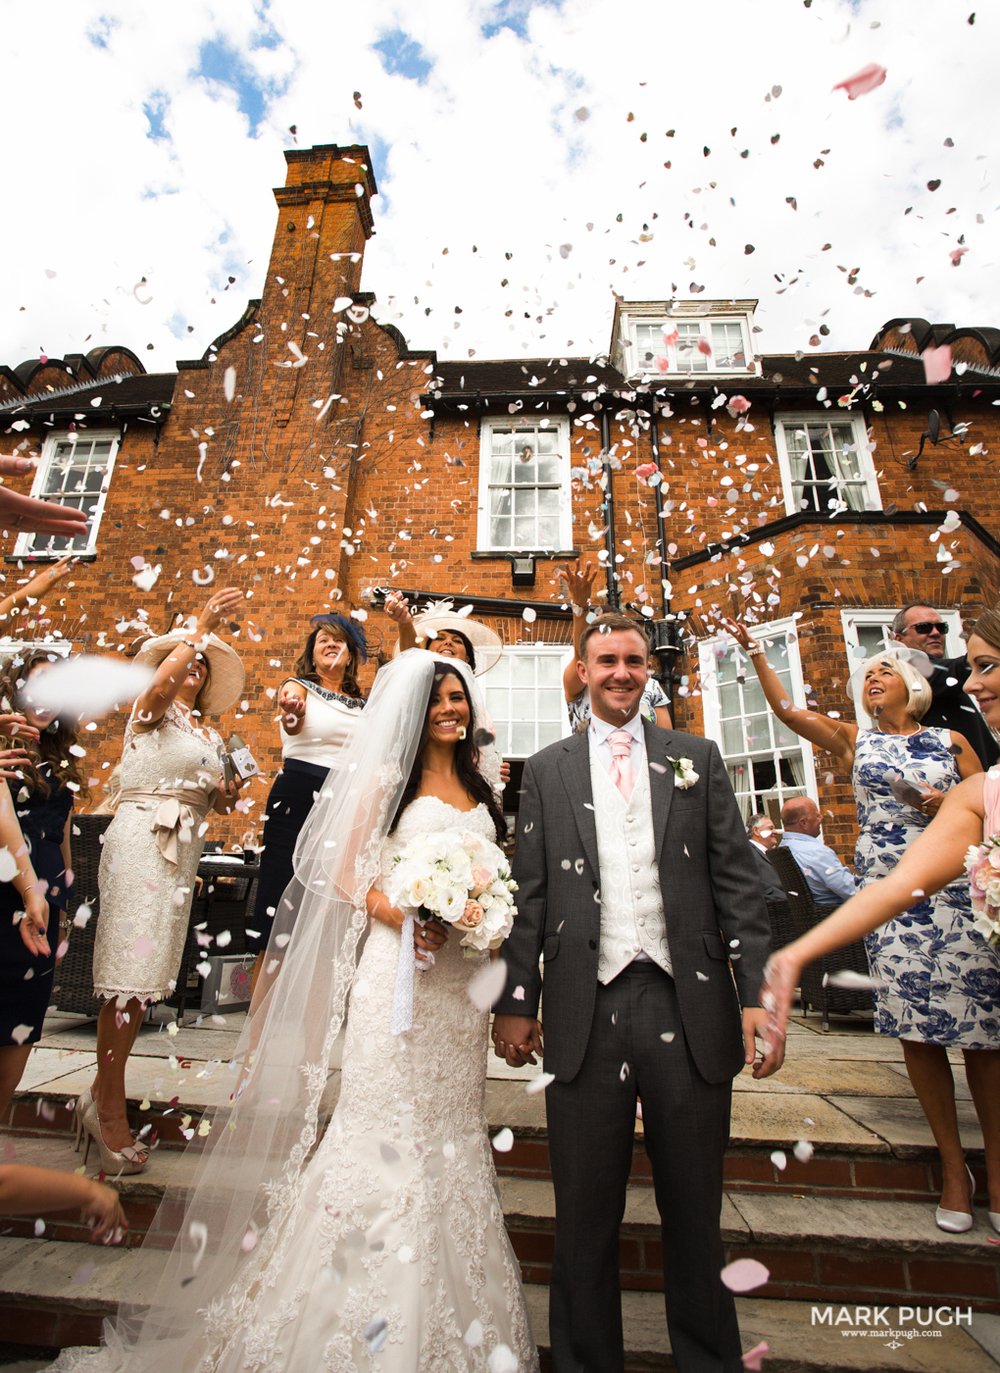 111 - Jacqueline and David - Fine Art Wedding Photography featuring Kelham House Country Manor Hotel NG23 5QP by Mark Pugh www.markpugh.com.jpg